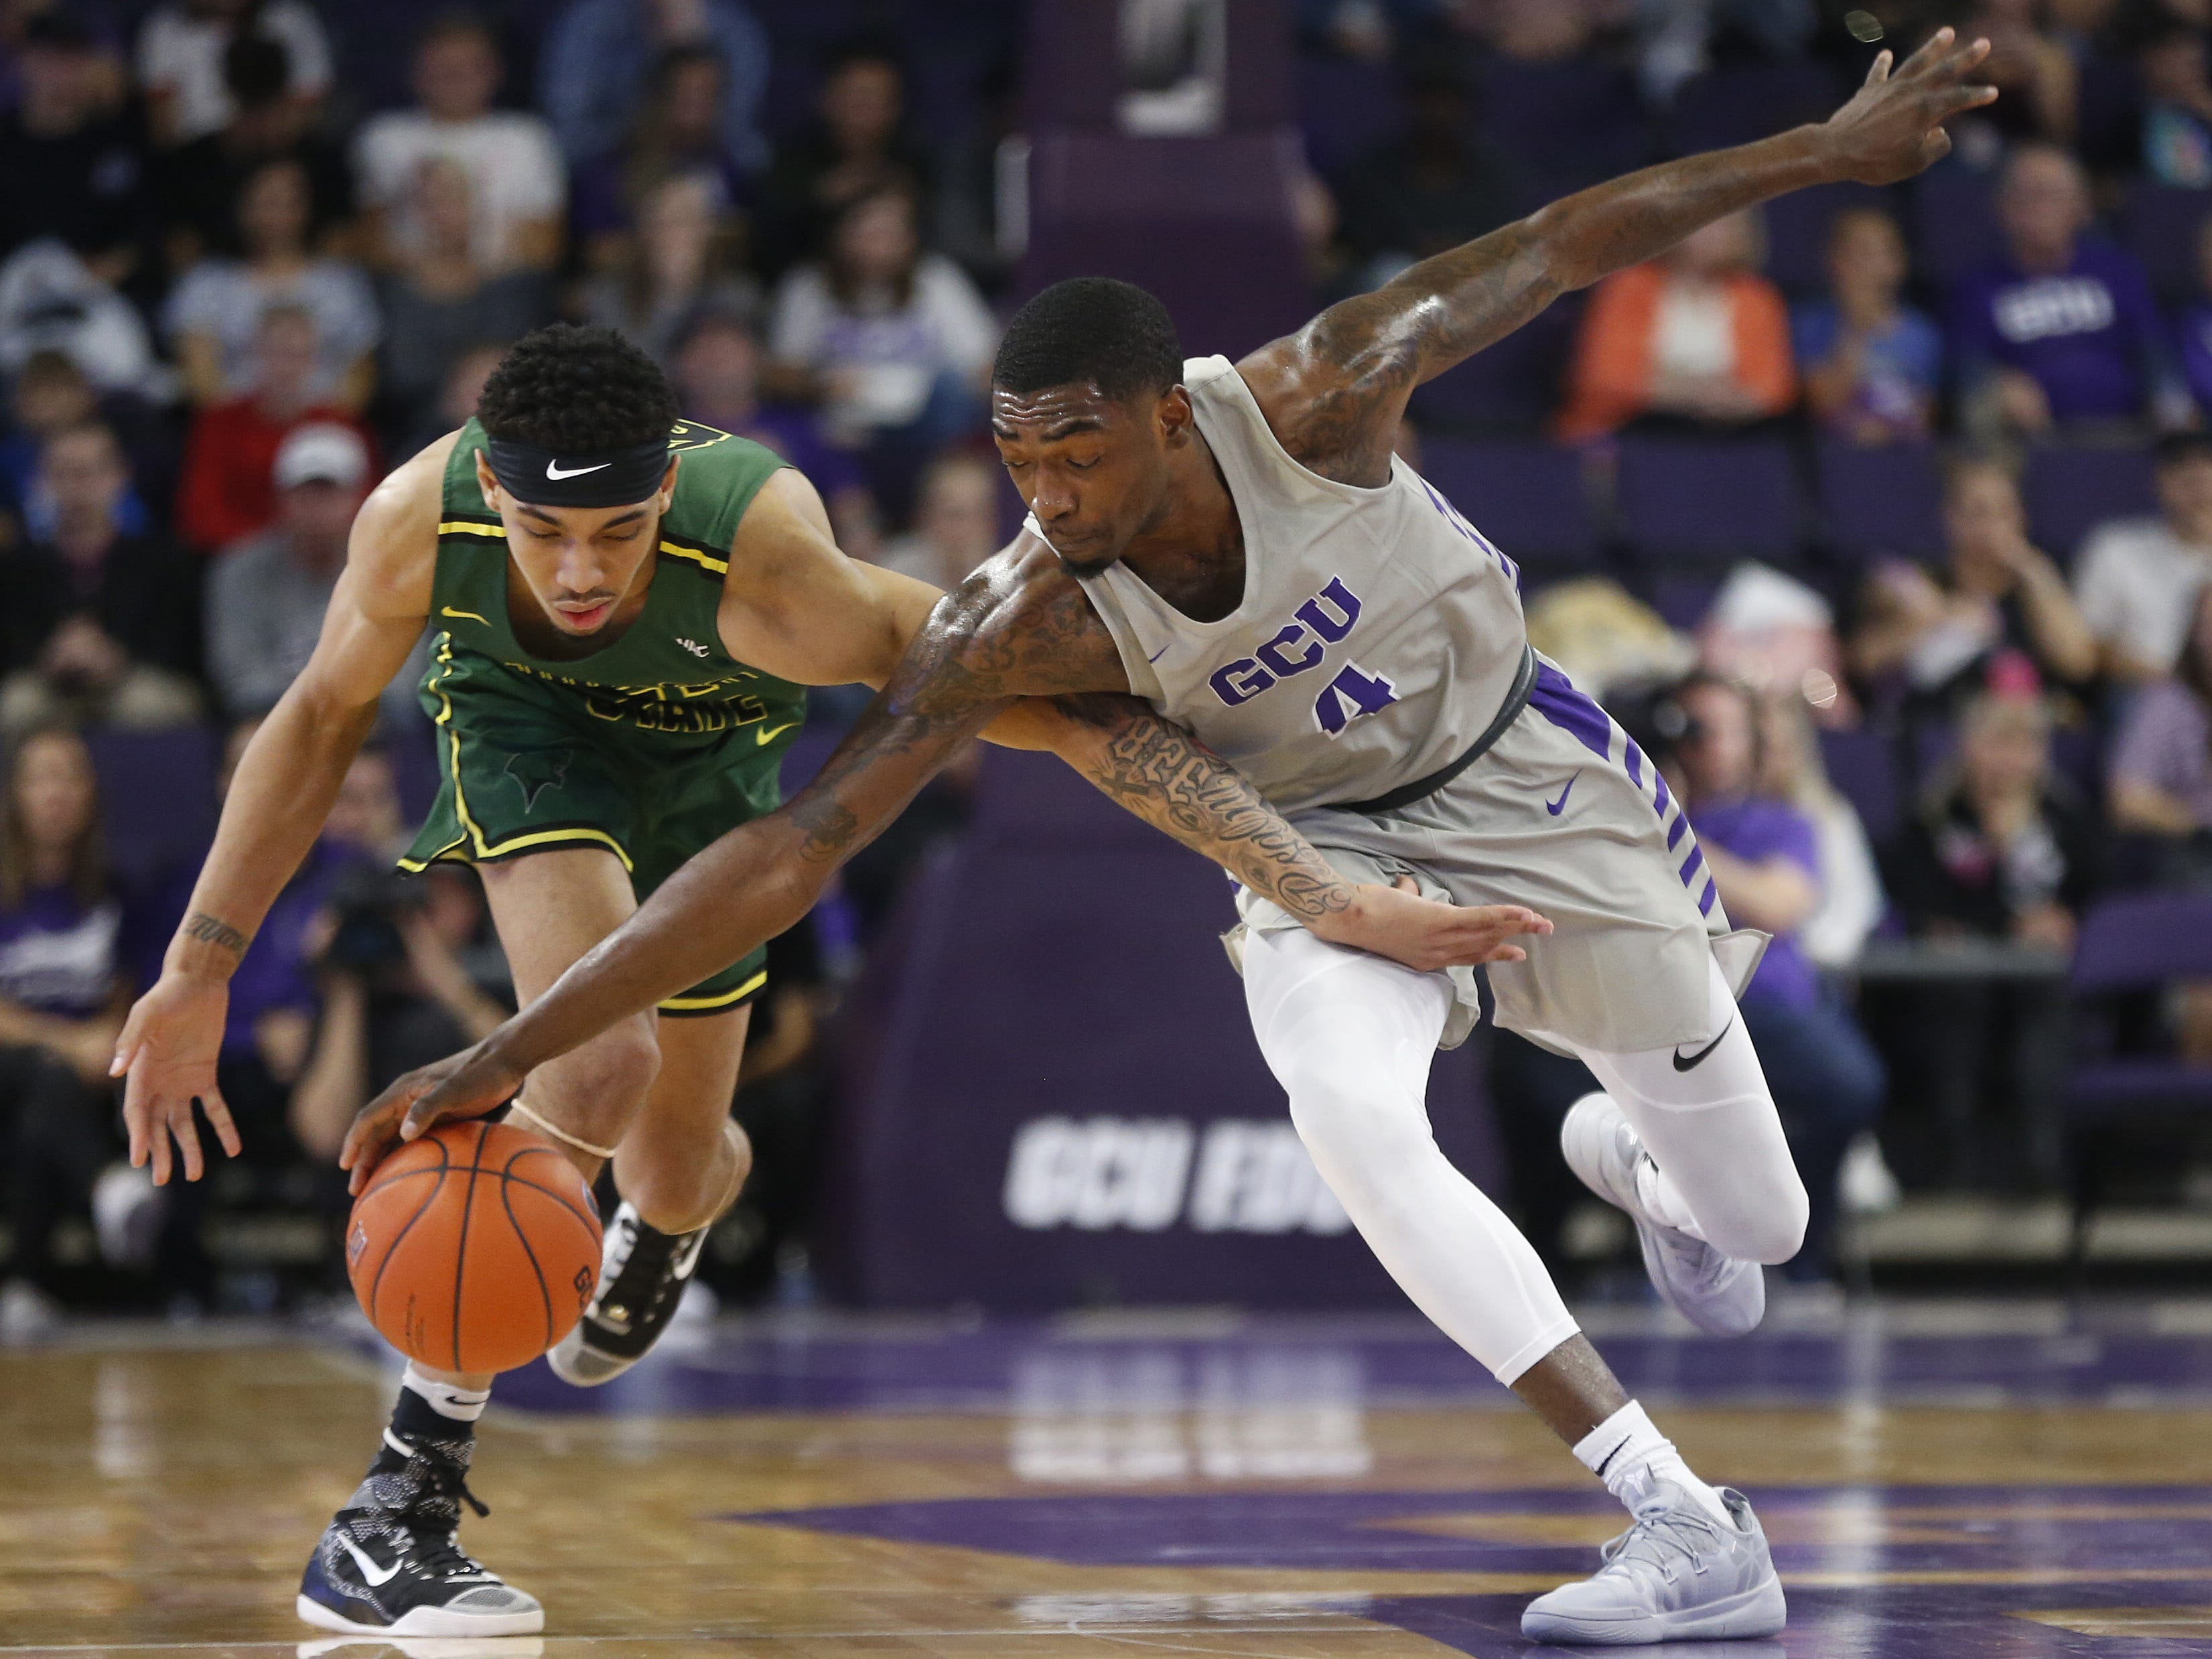 GCU's Oscar Frayer (4) steals a ball away from Chicago State University's Cameron Bowles (21) during the first half at Grand Canyon University Arena in Phoenix, Ariz. on January 17, 2019.